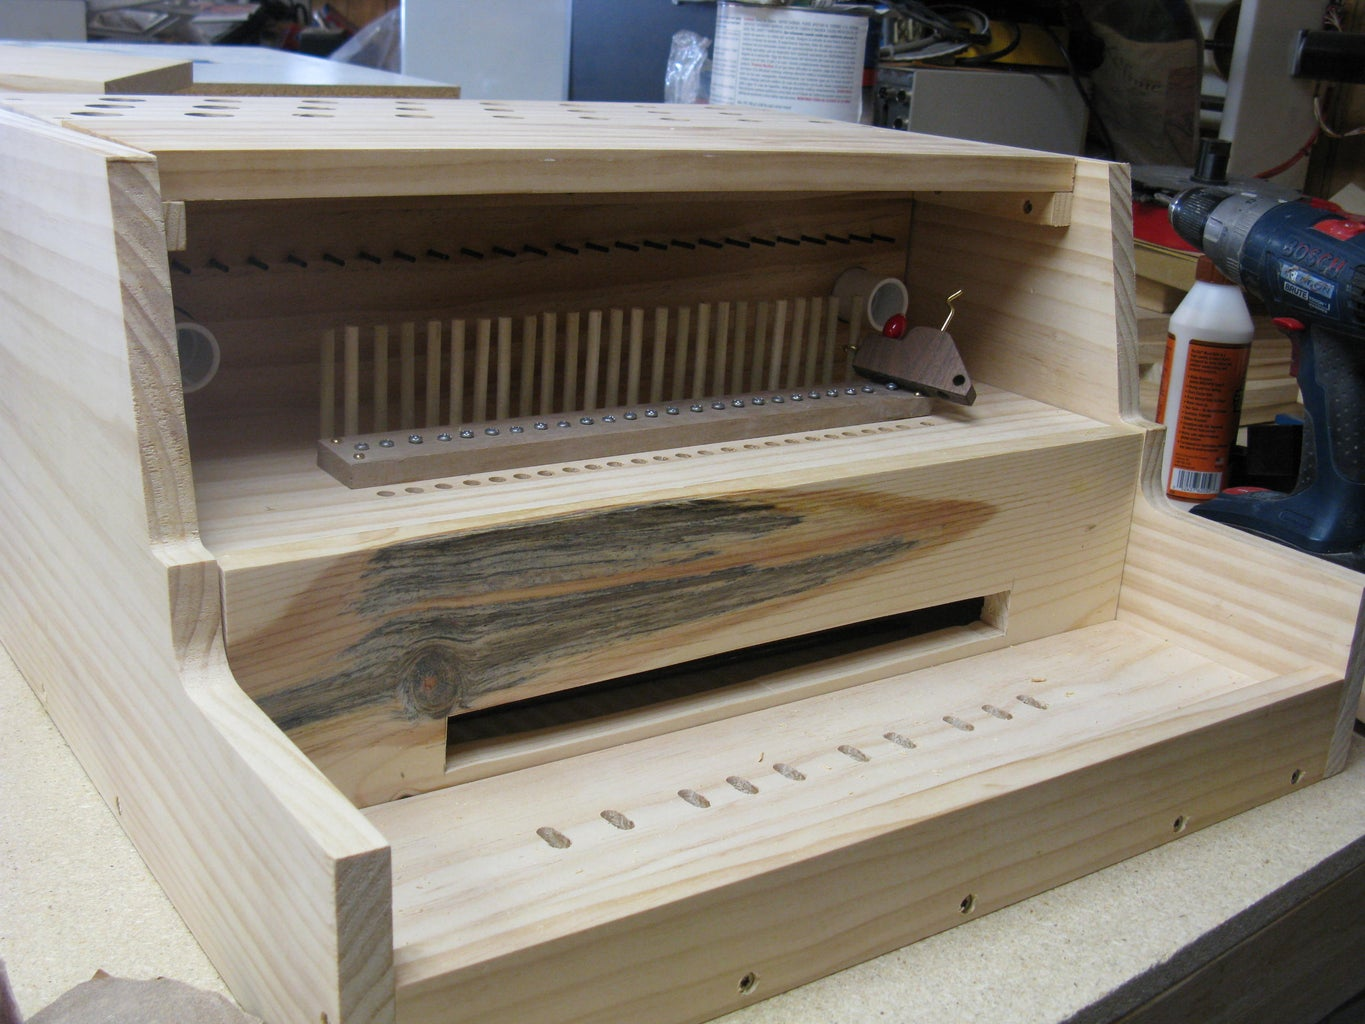 Building the Chest